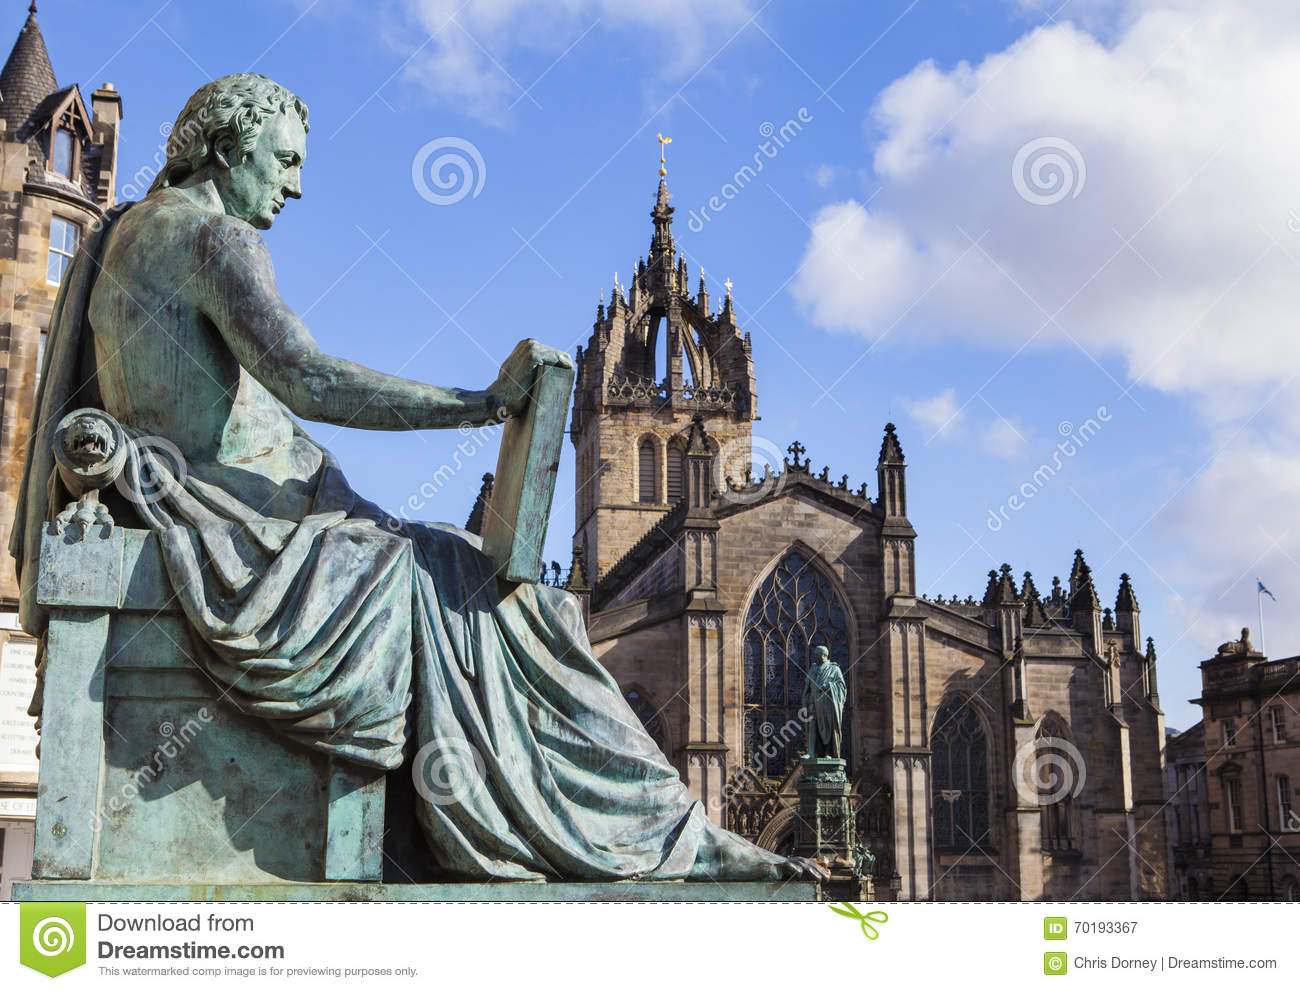 David Hume Statue and St Giles Cathedral in Edinburgh